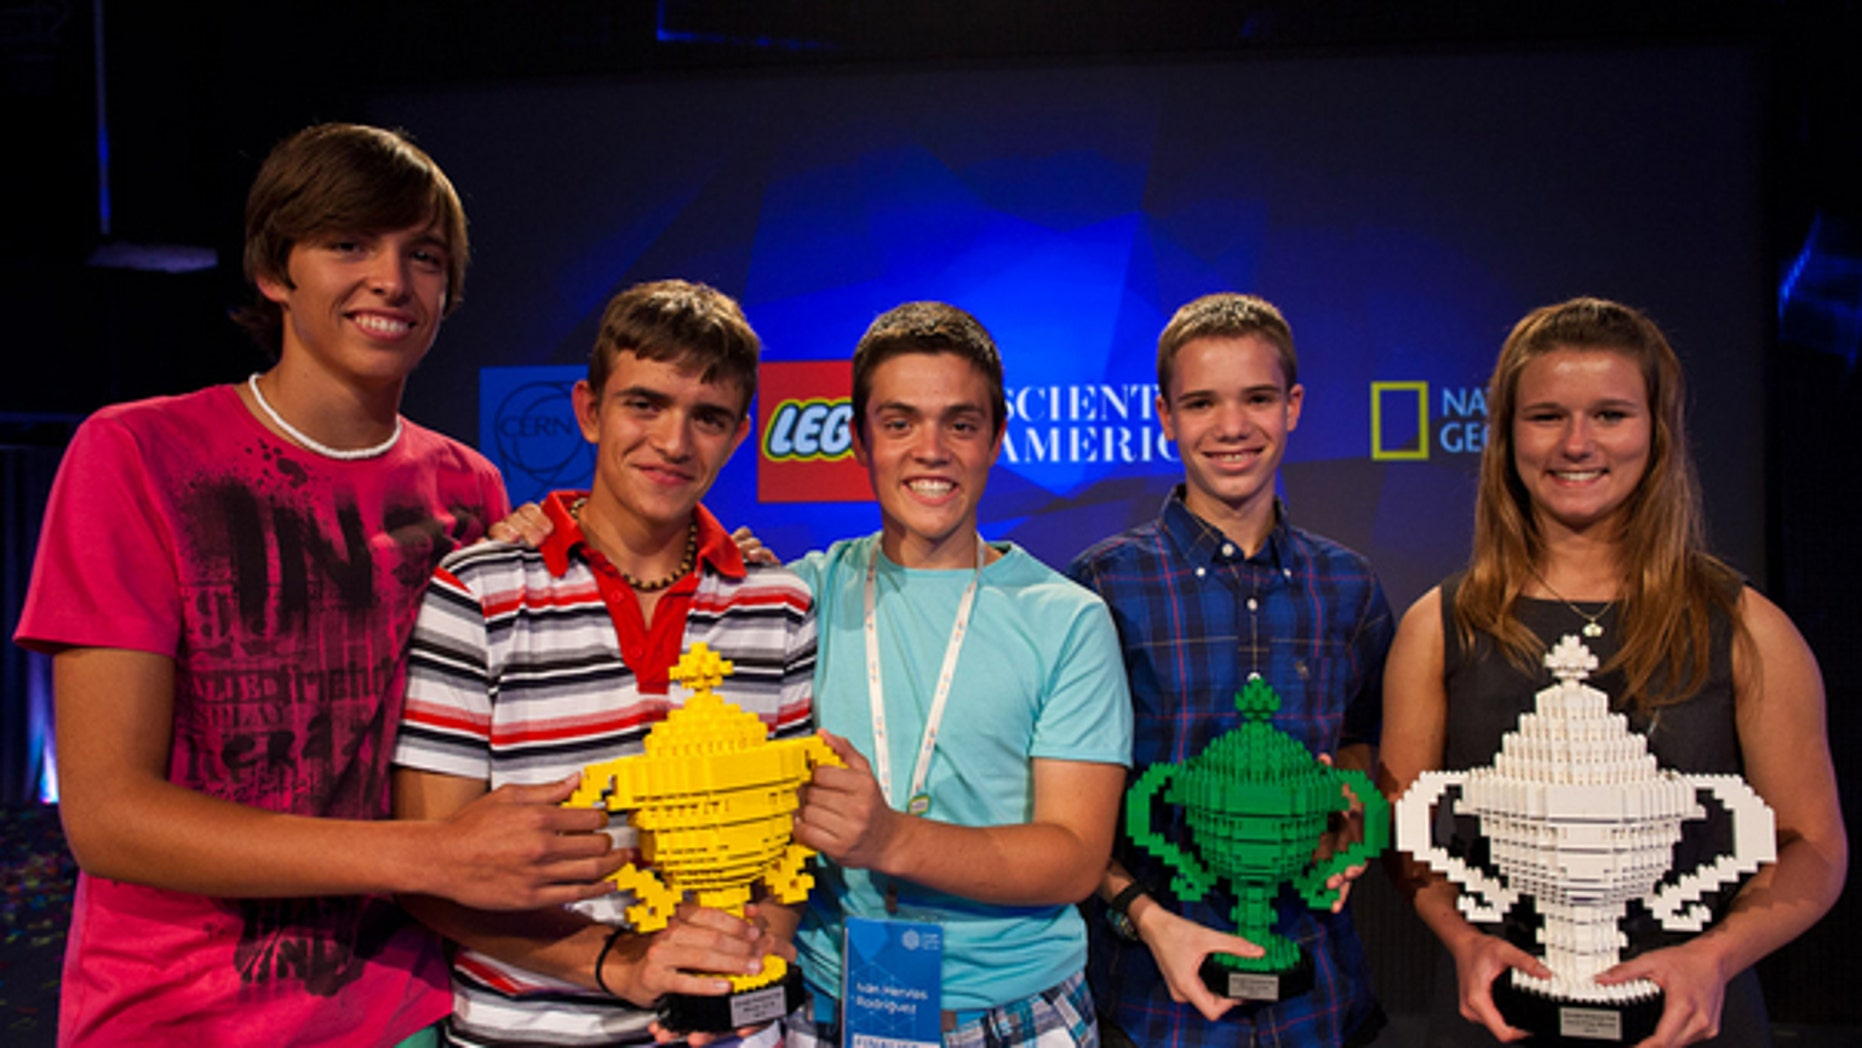 Google Science Fair grand prize winner Brittany Wenger (far right) shares the stage with other winners in their age categories